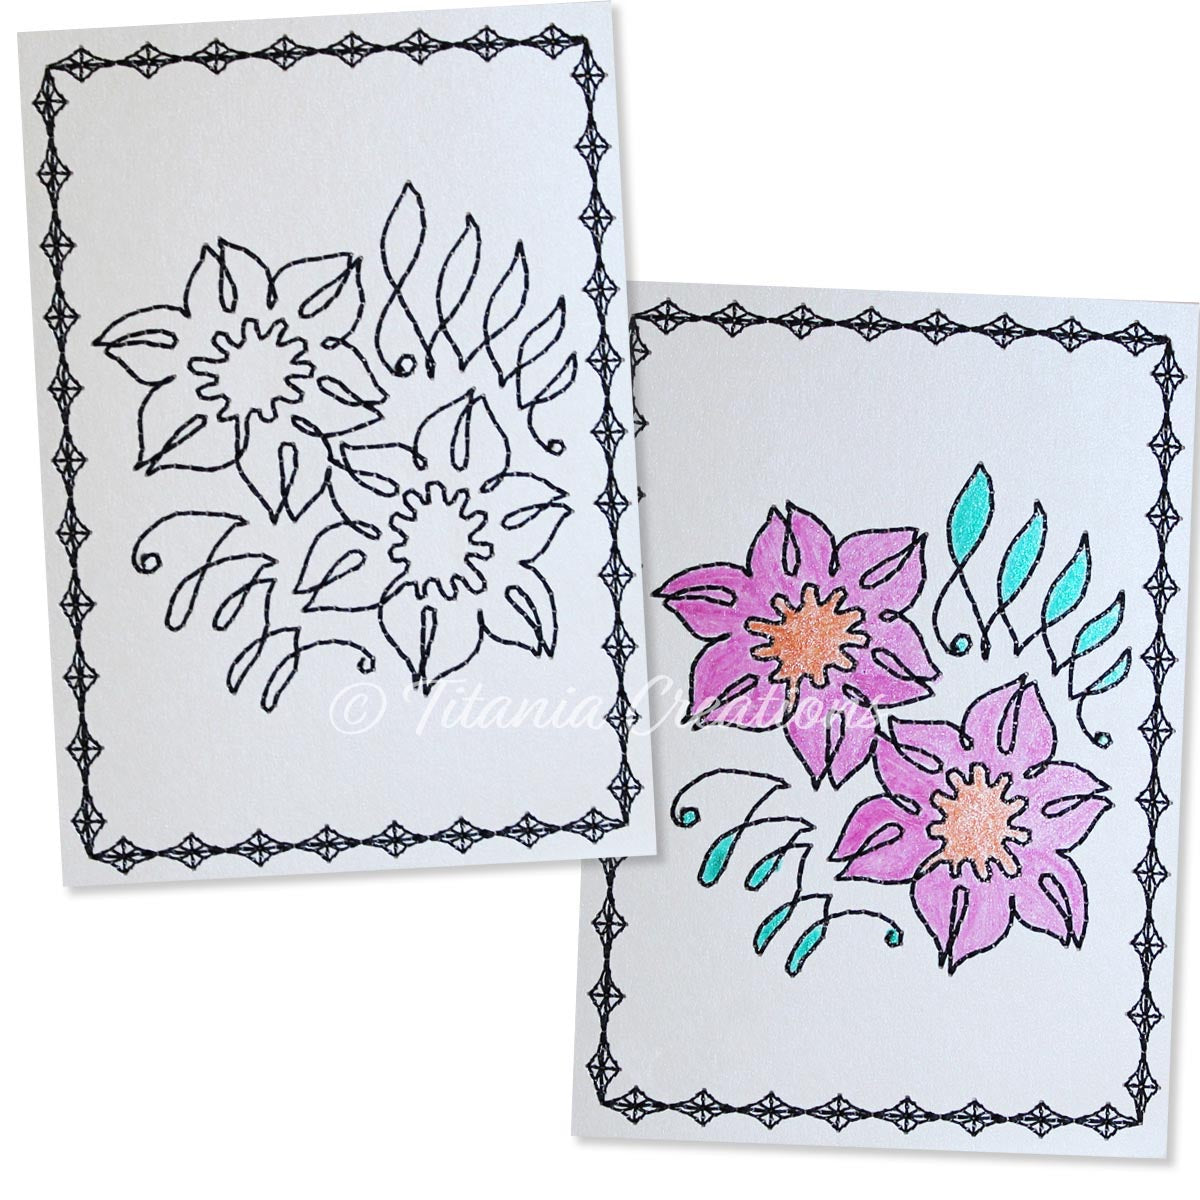 Simply Floral 04 Card Stock Design 5x7